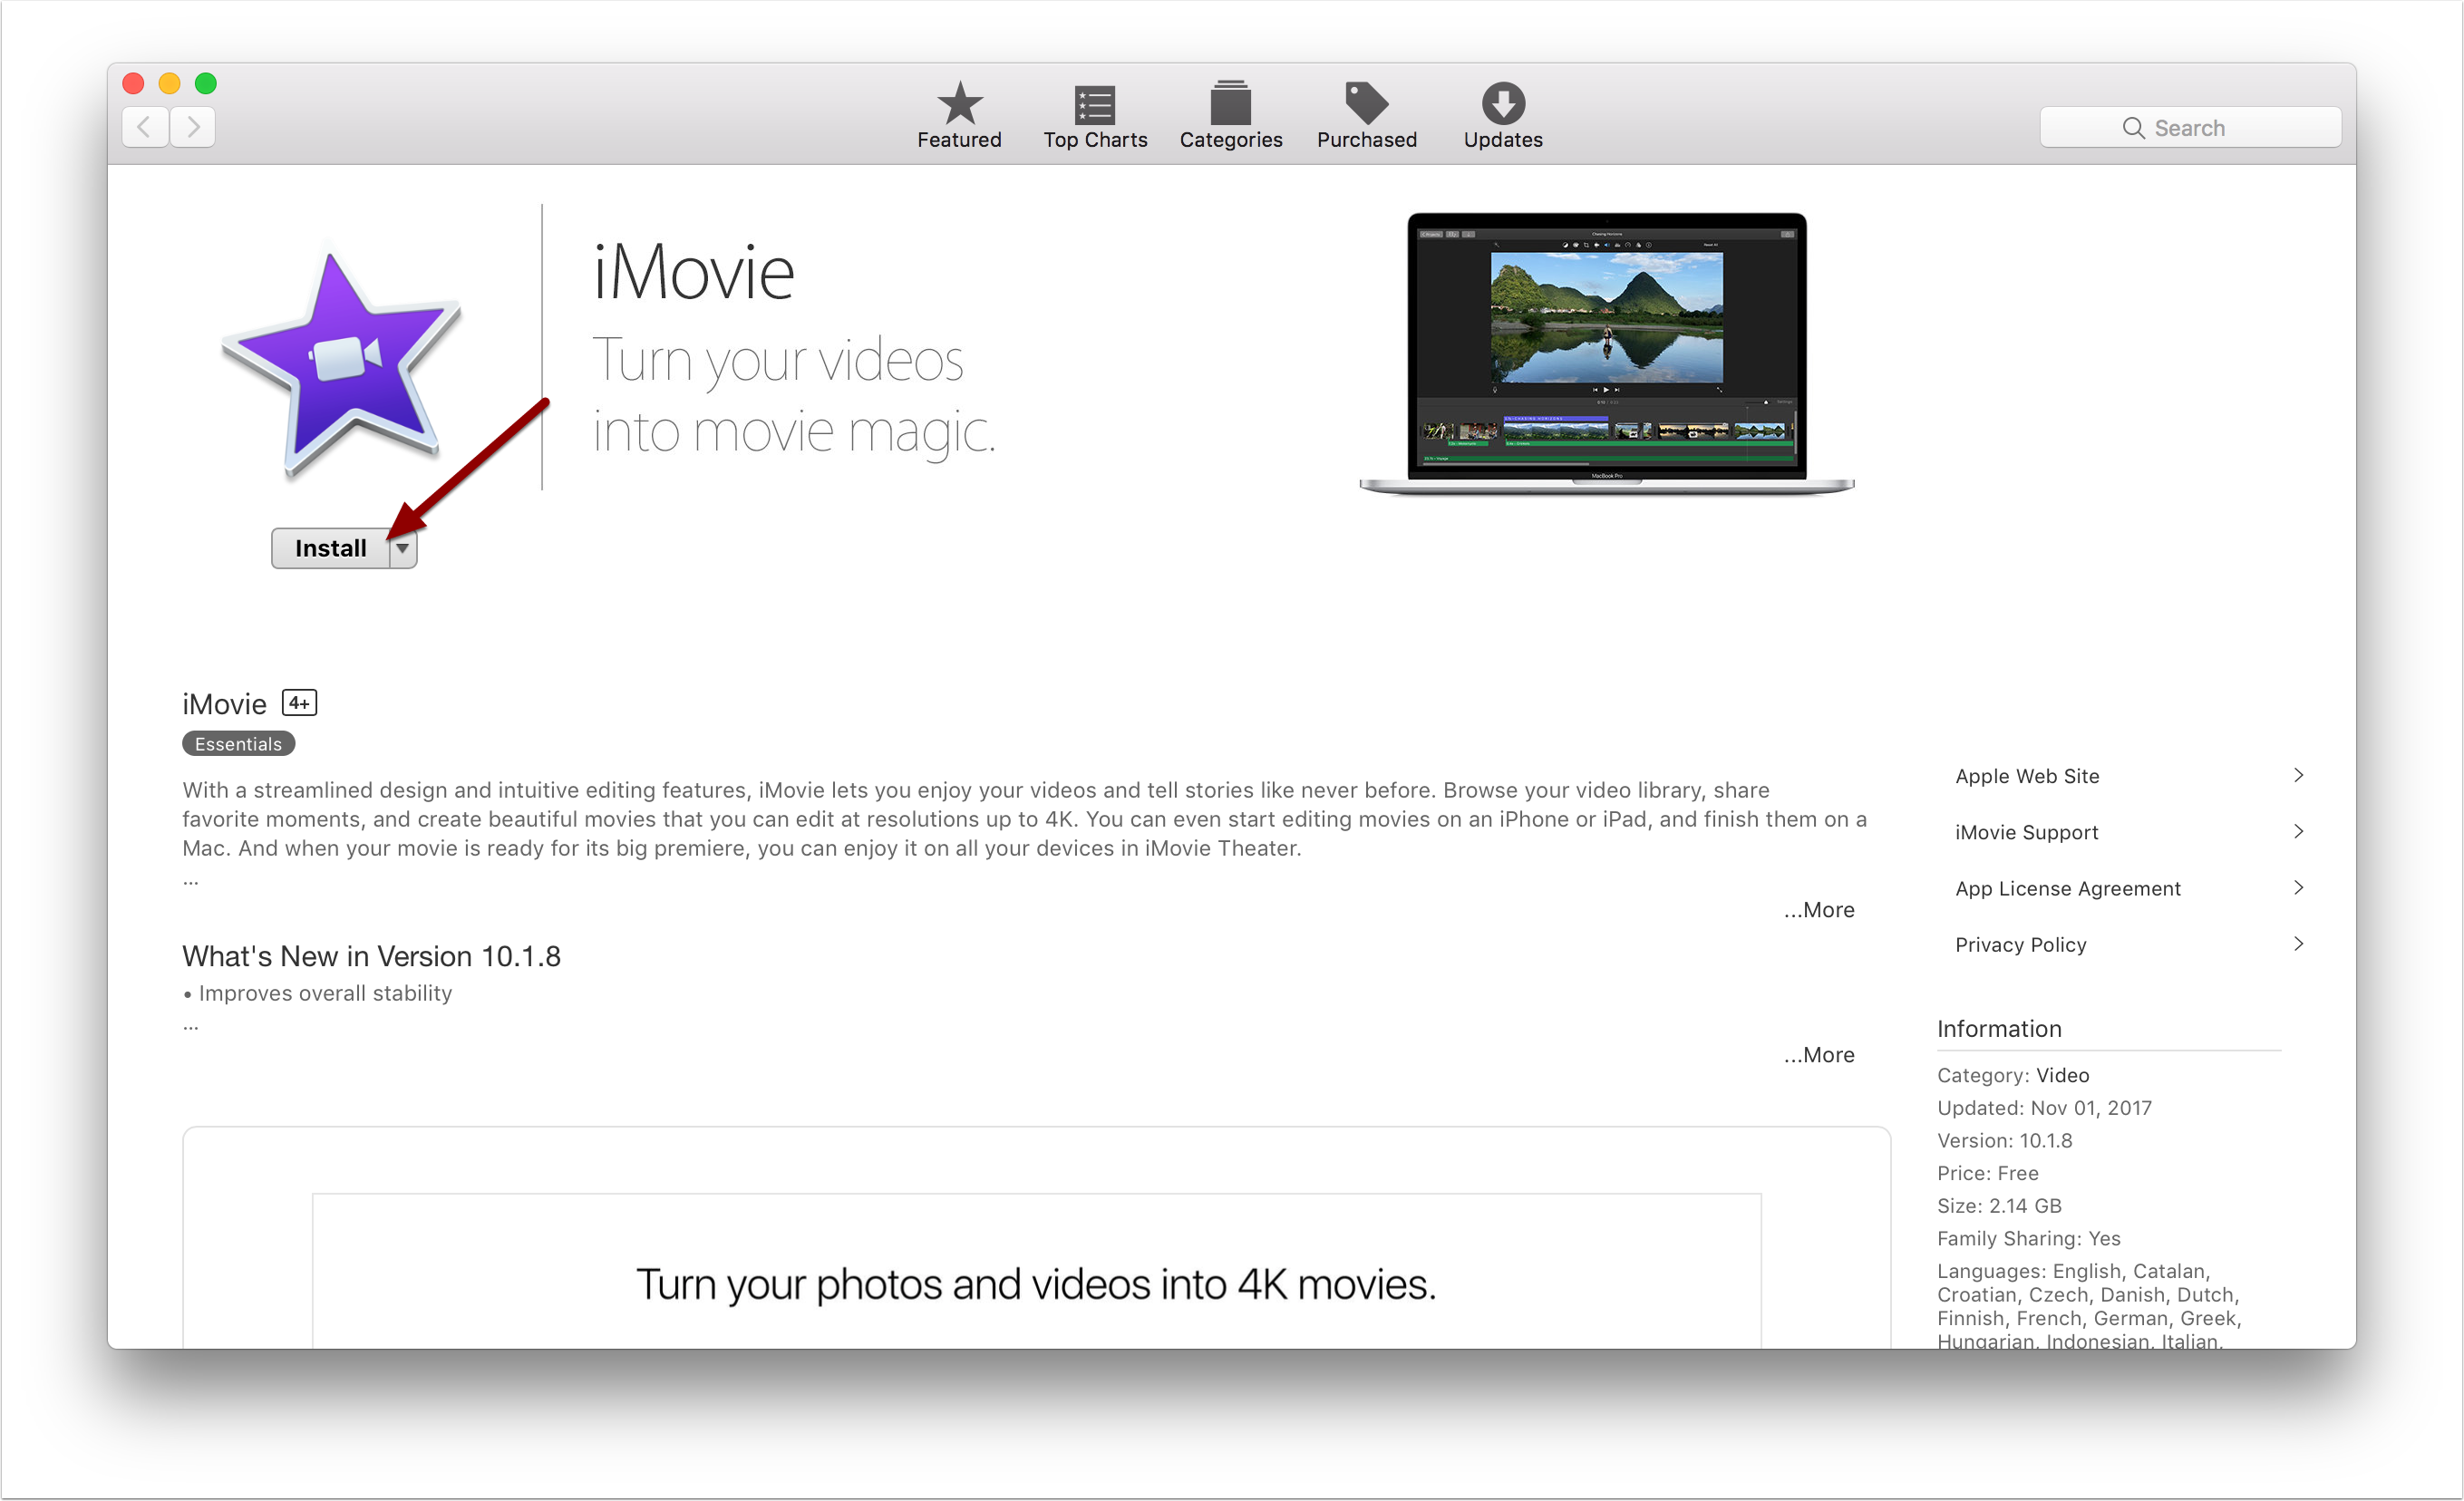 Install button in Apple App Store